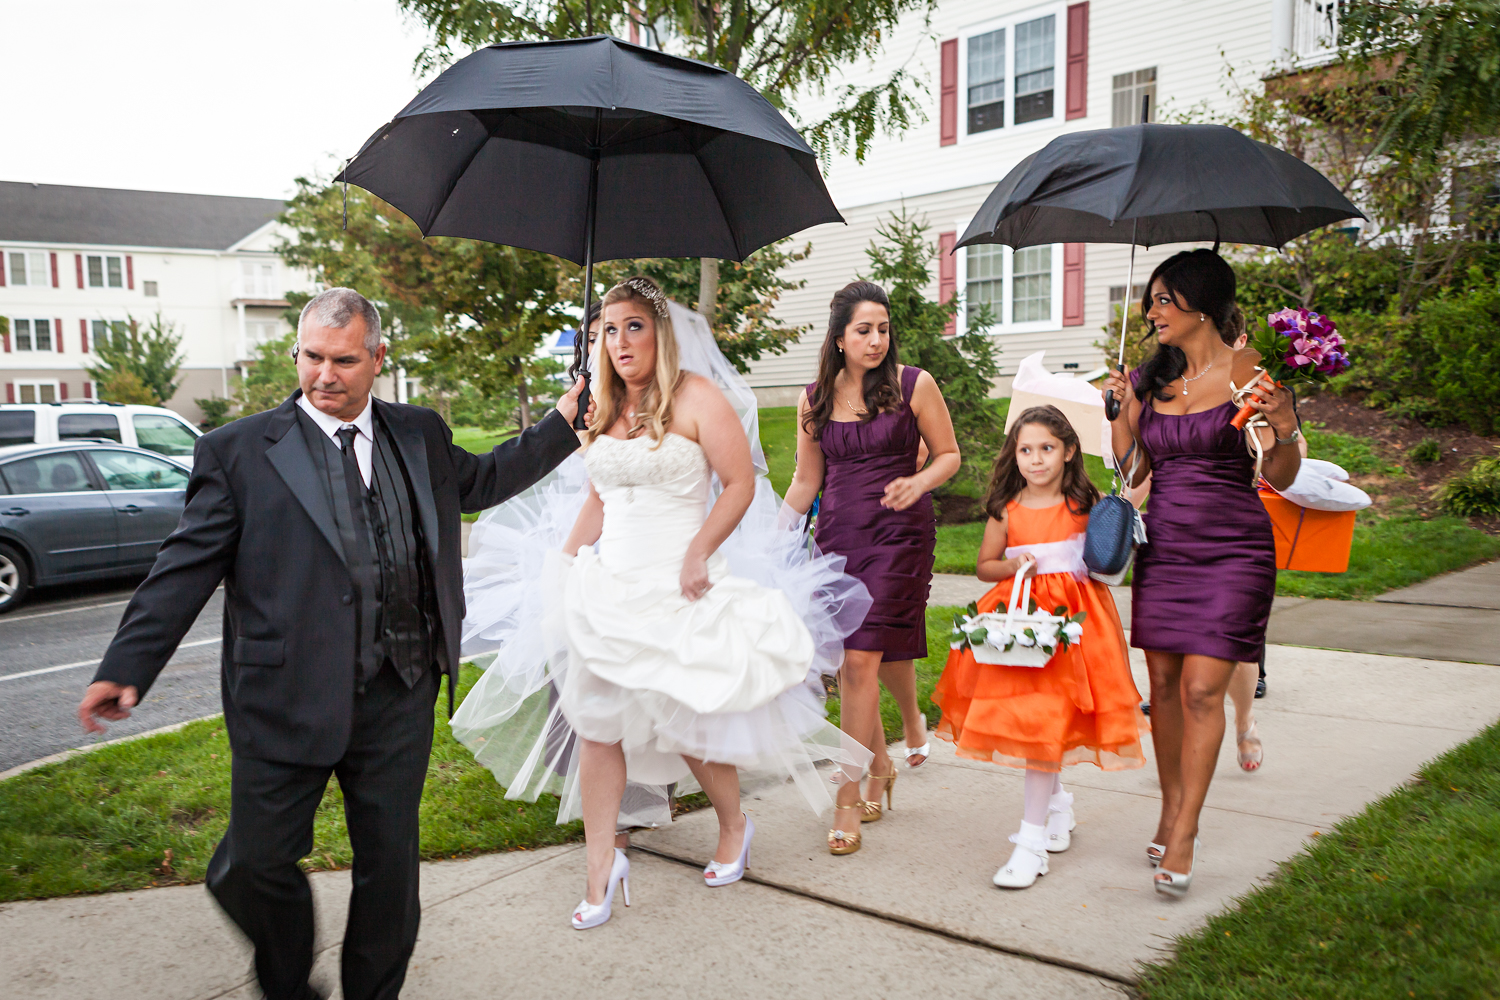 Bride and bridal party walking under umbrellas